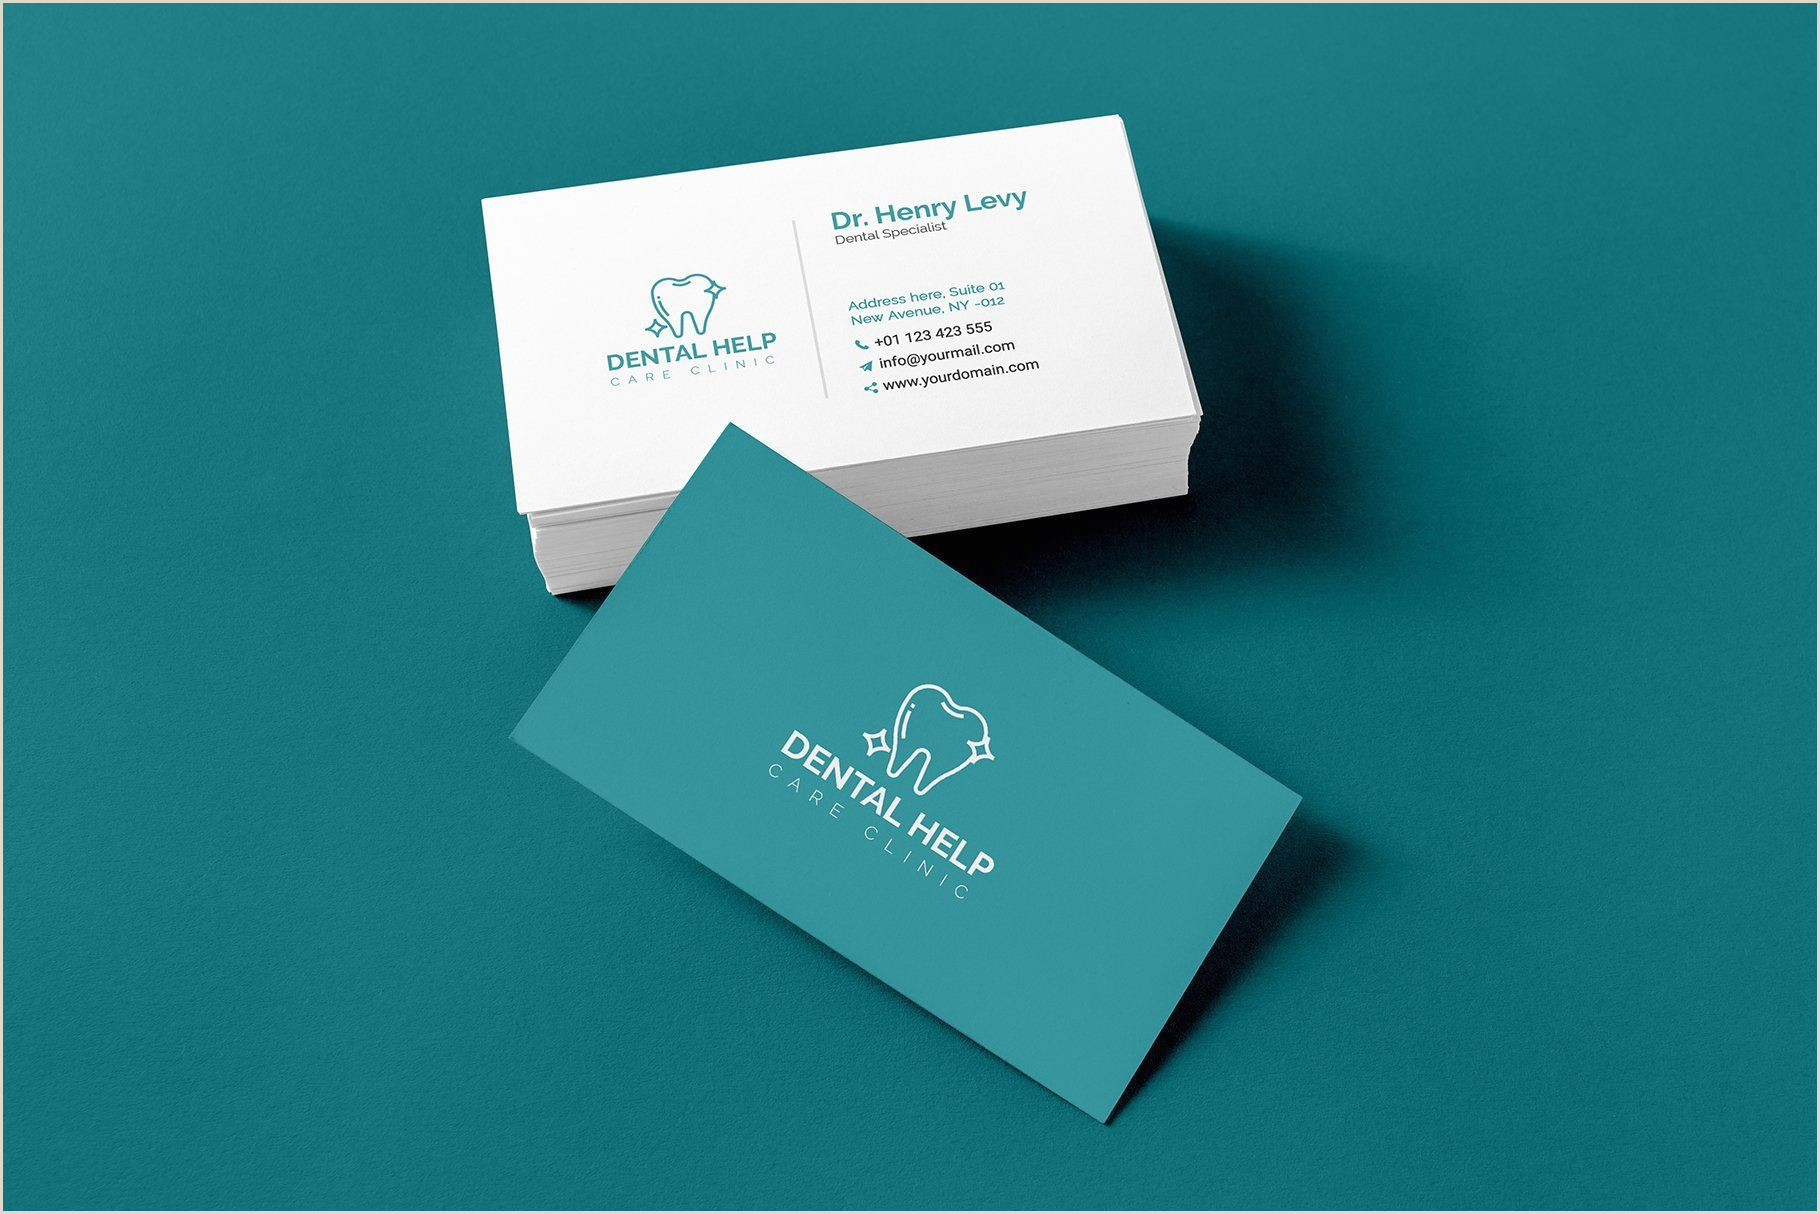 Information Business Cards Dentist Business Card Templates In 2020